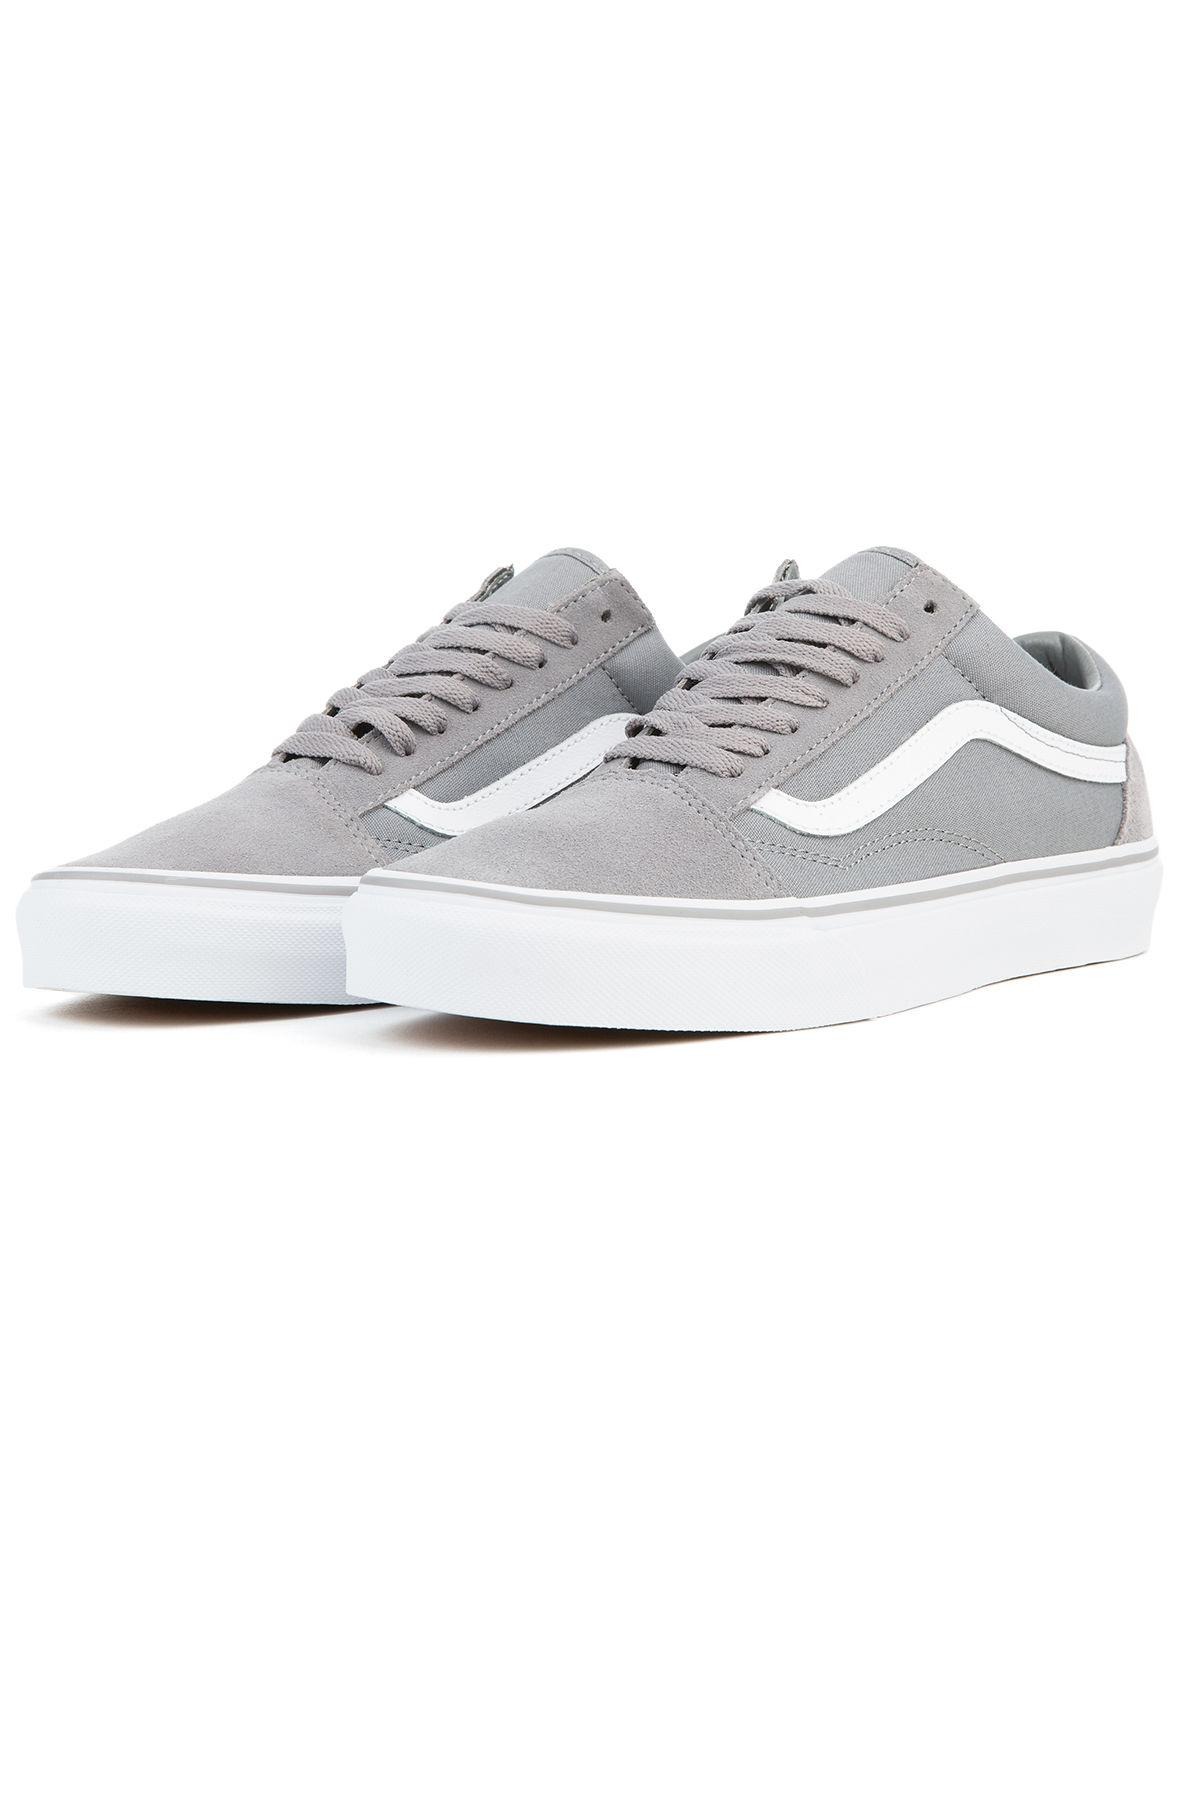 a73c6f4e121 Lyst - Vans The Unisex Old Skool In Frost Grey Suede And True White ...